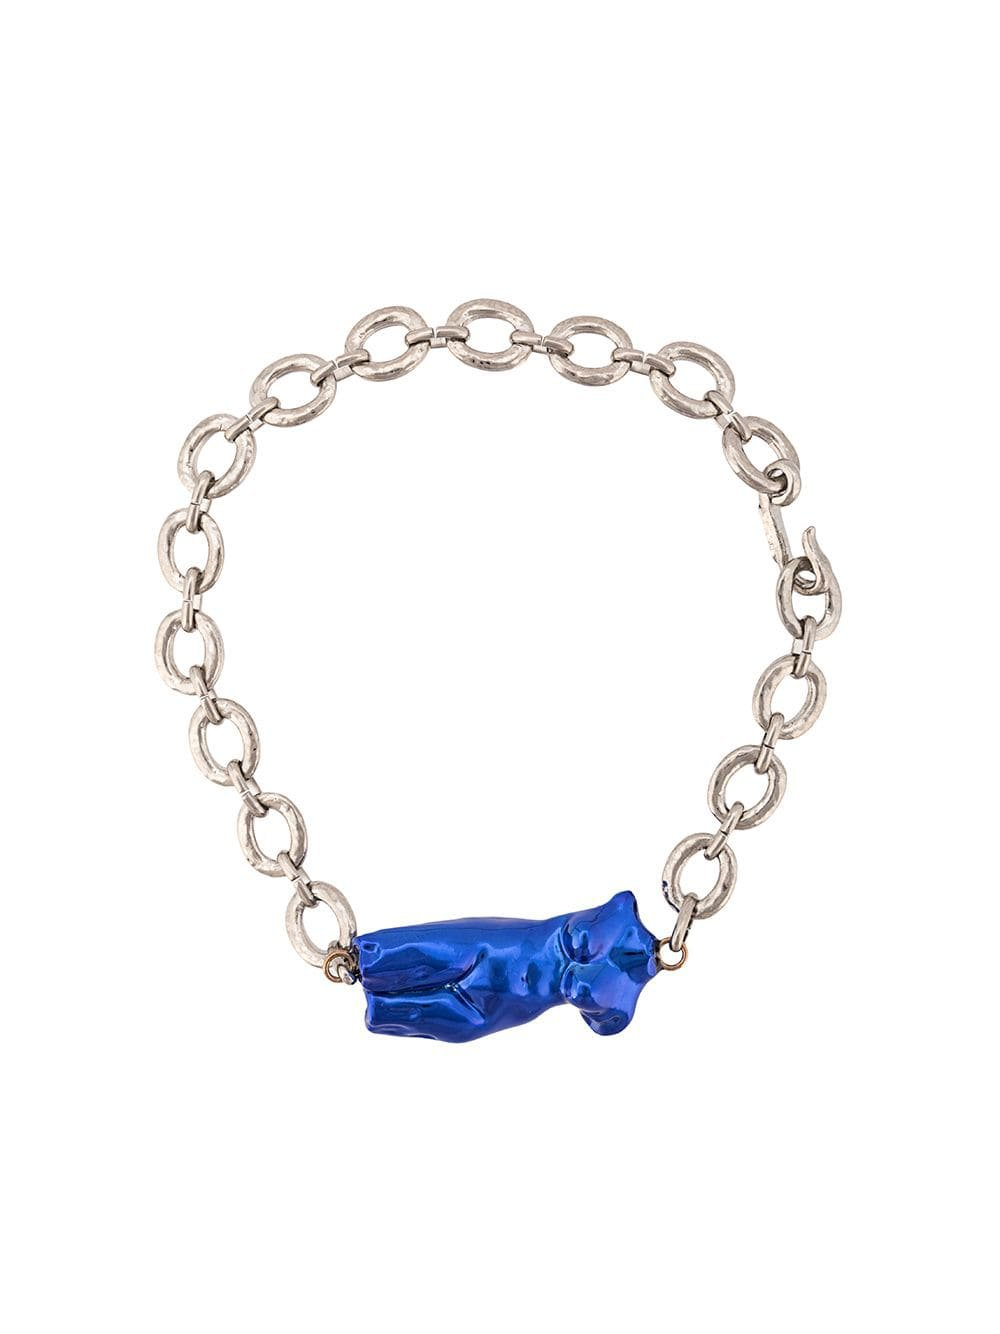 Marni body sculpture necklace $275 - Buy Online - Mobile Friendly, Fast Delivery, Price